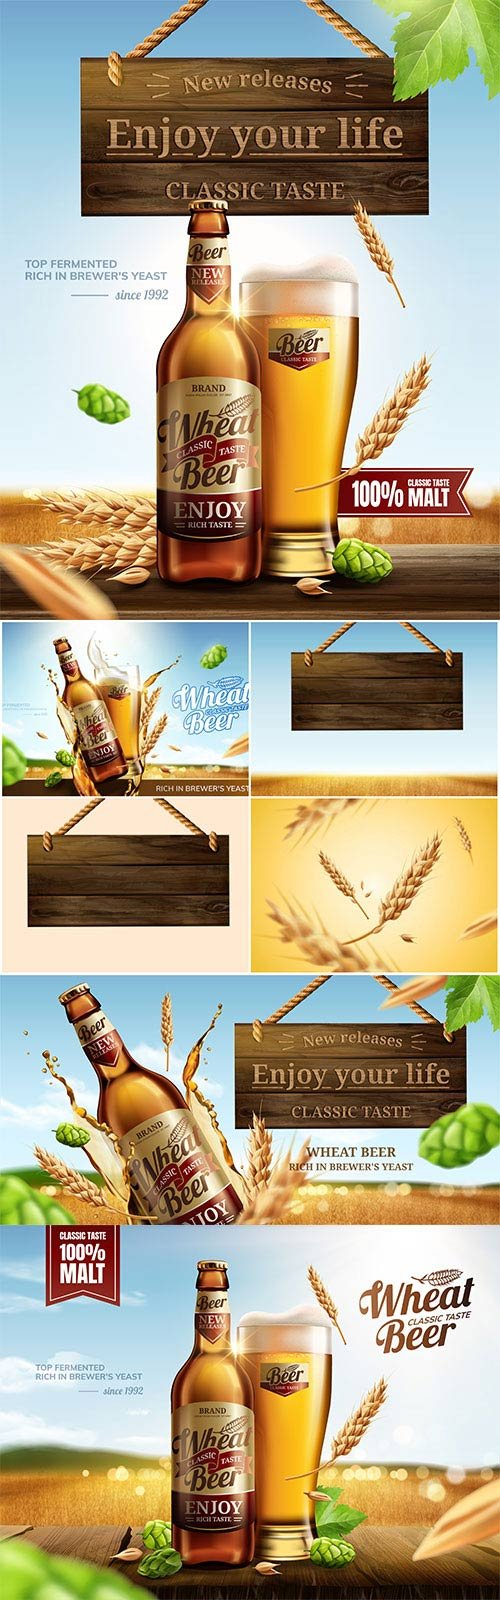 Attractive glass bottle wheat beer in 3d vector illustration